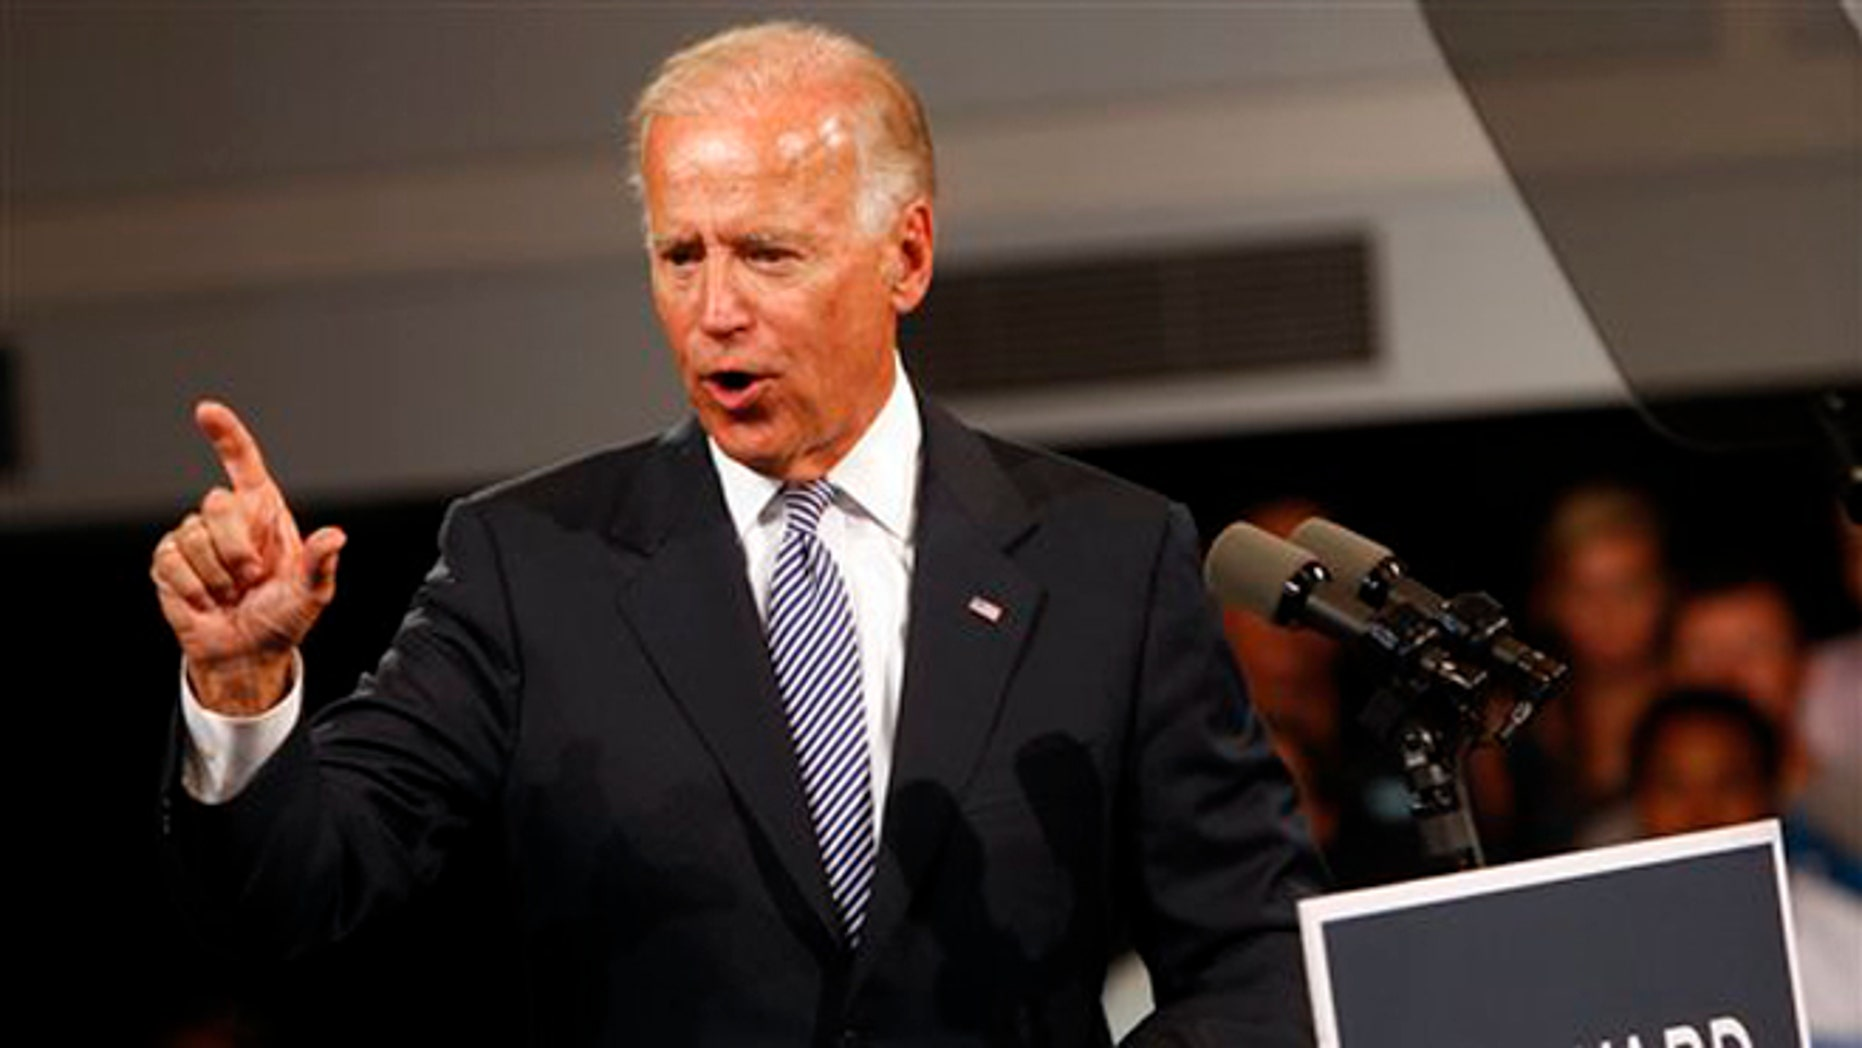 FILE: August 13, 2012: Vice President Joe Biden on the campaign trail in Durham, N.C.